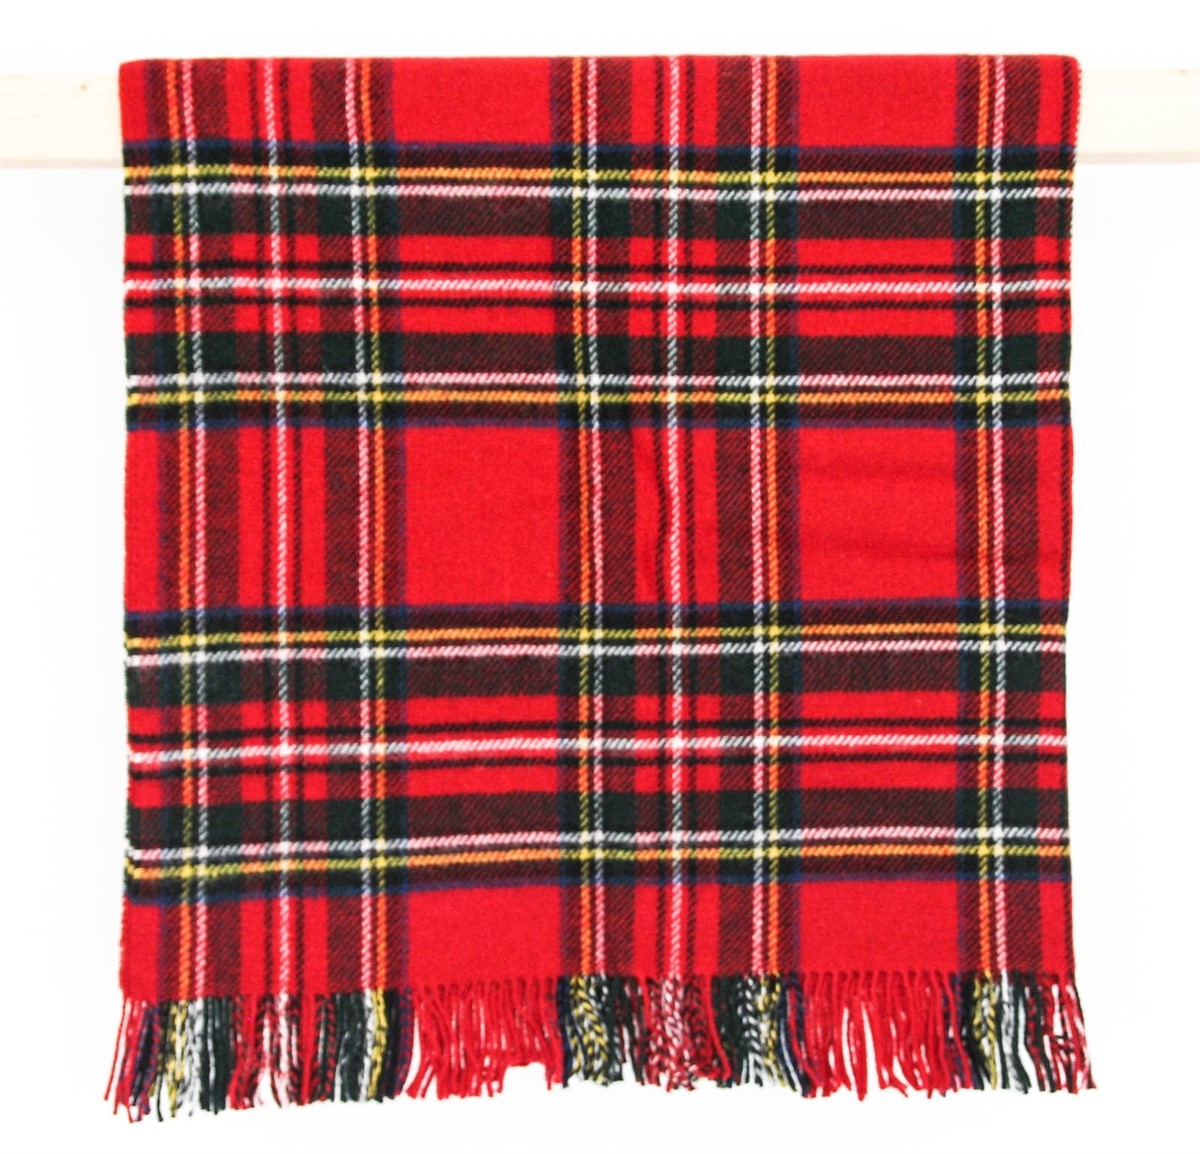 Wool Blanket Online British Made Gifts Red Check Royal